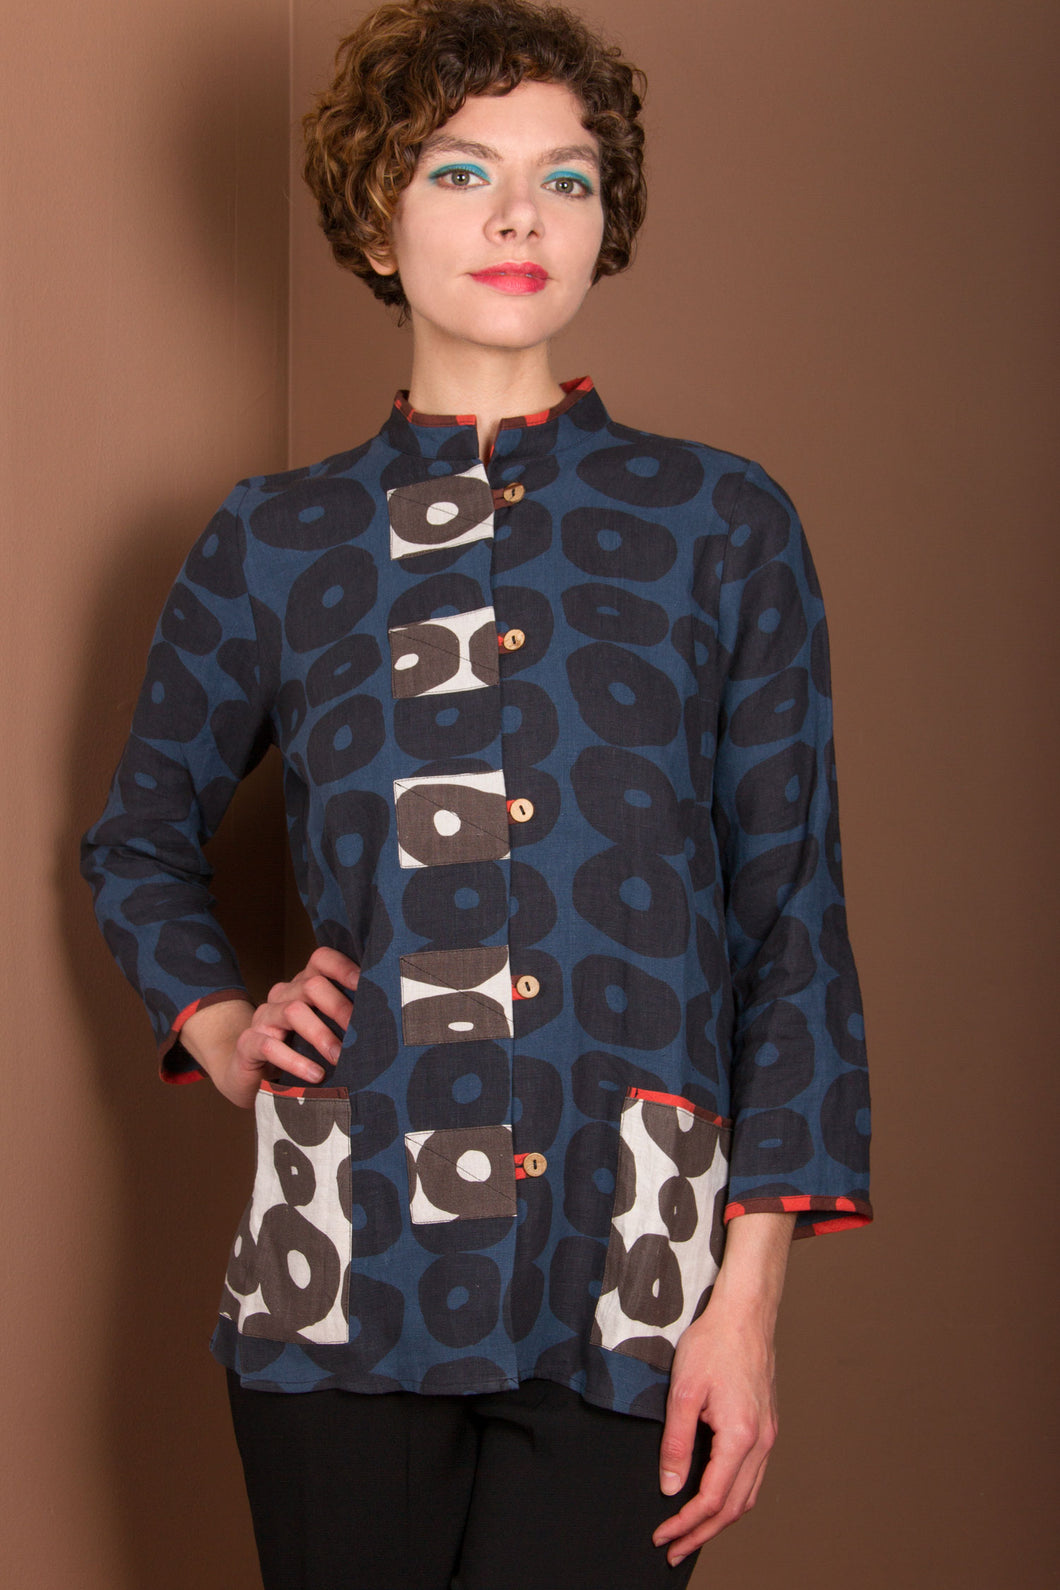 Cotton Jacket Top - Black, Blue Circles